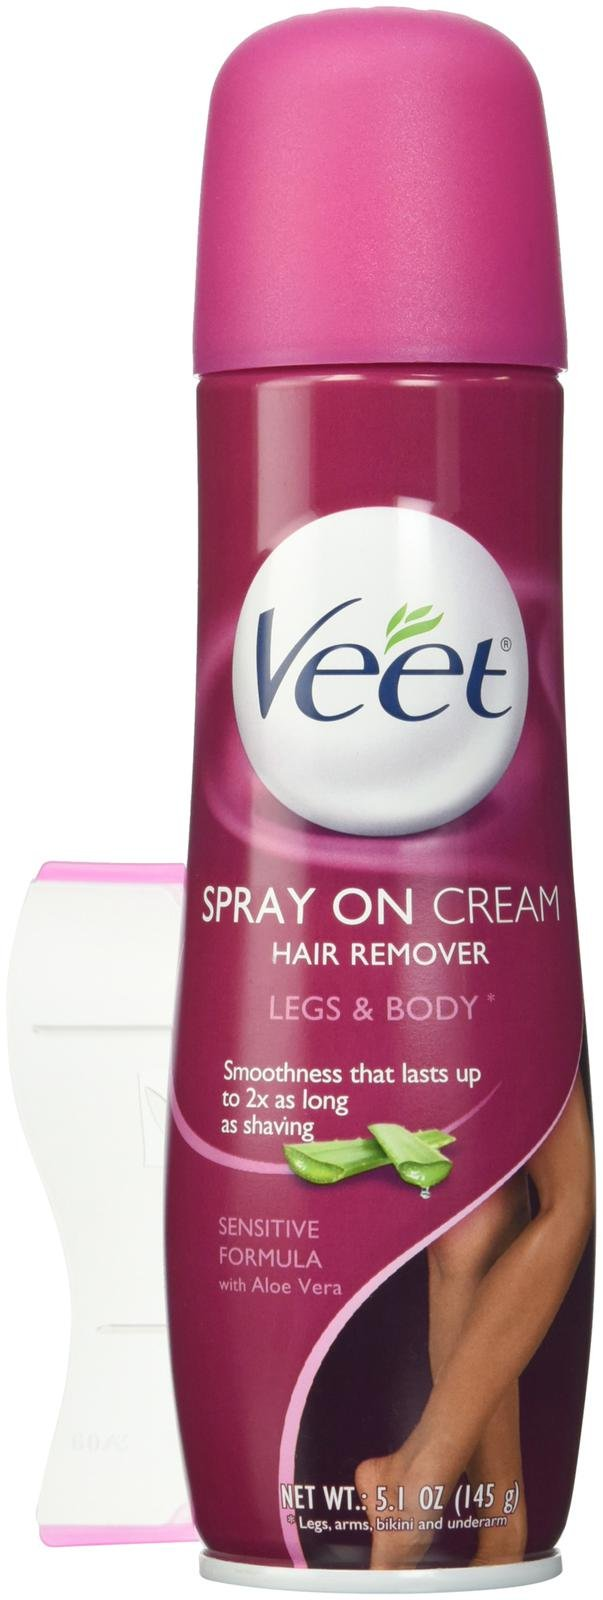 Veet 3in1 Spray On Cream Hair Remover Reviews 2020